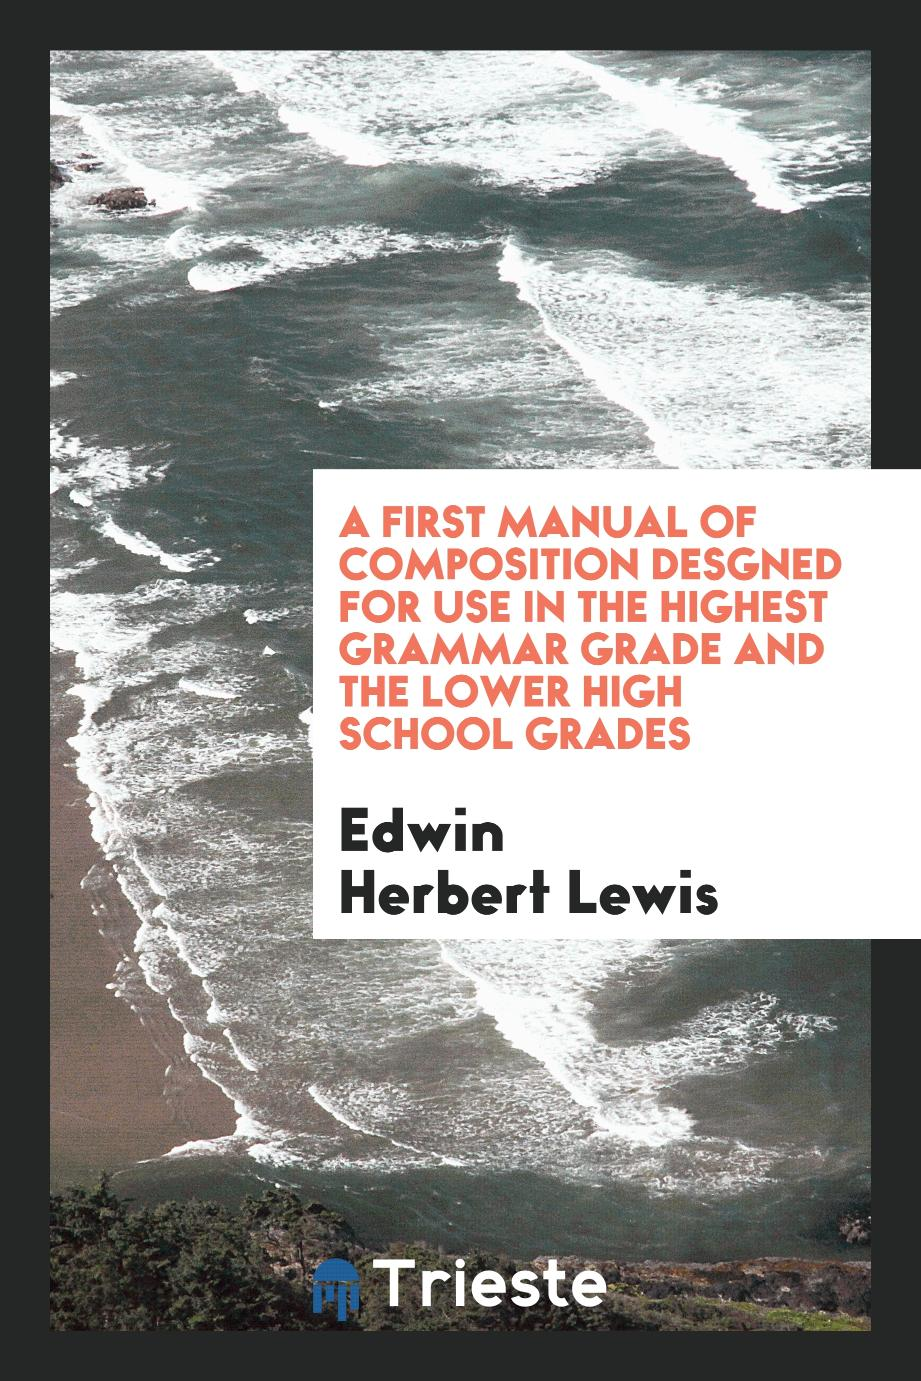 A First Manual of Composition Desgned for Use in the Highest Grammar Grade and the Lower High School Grades